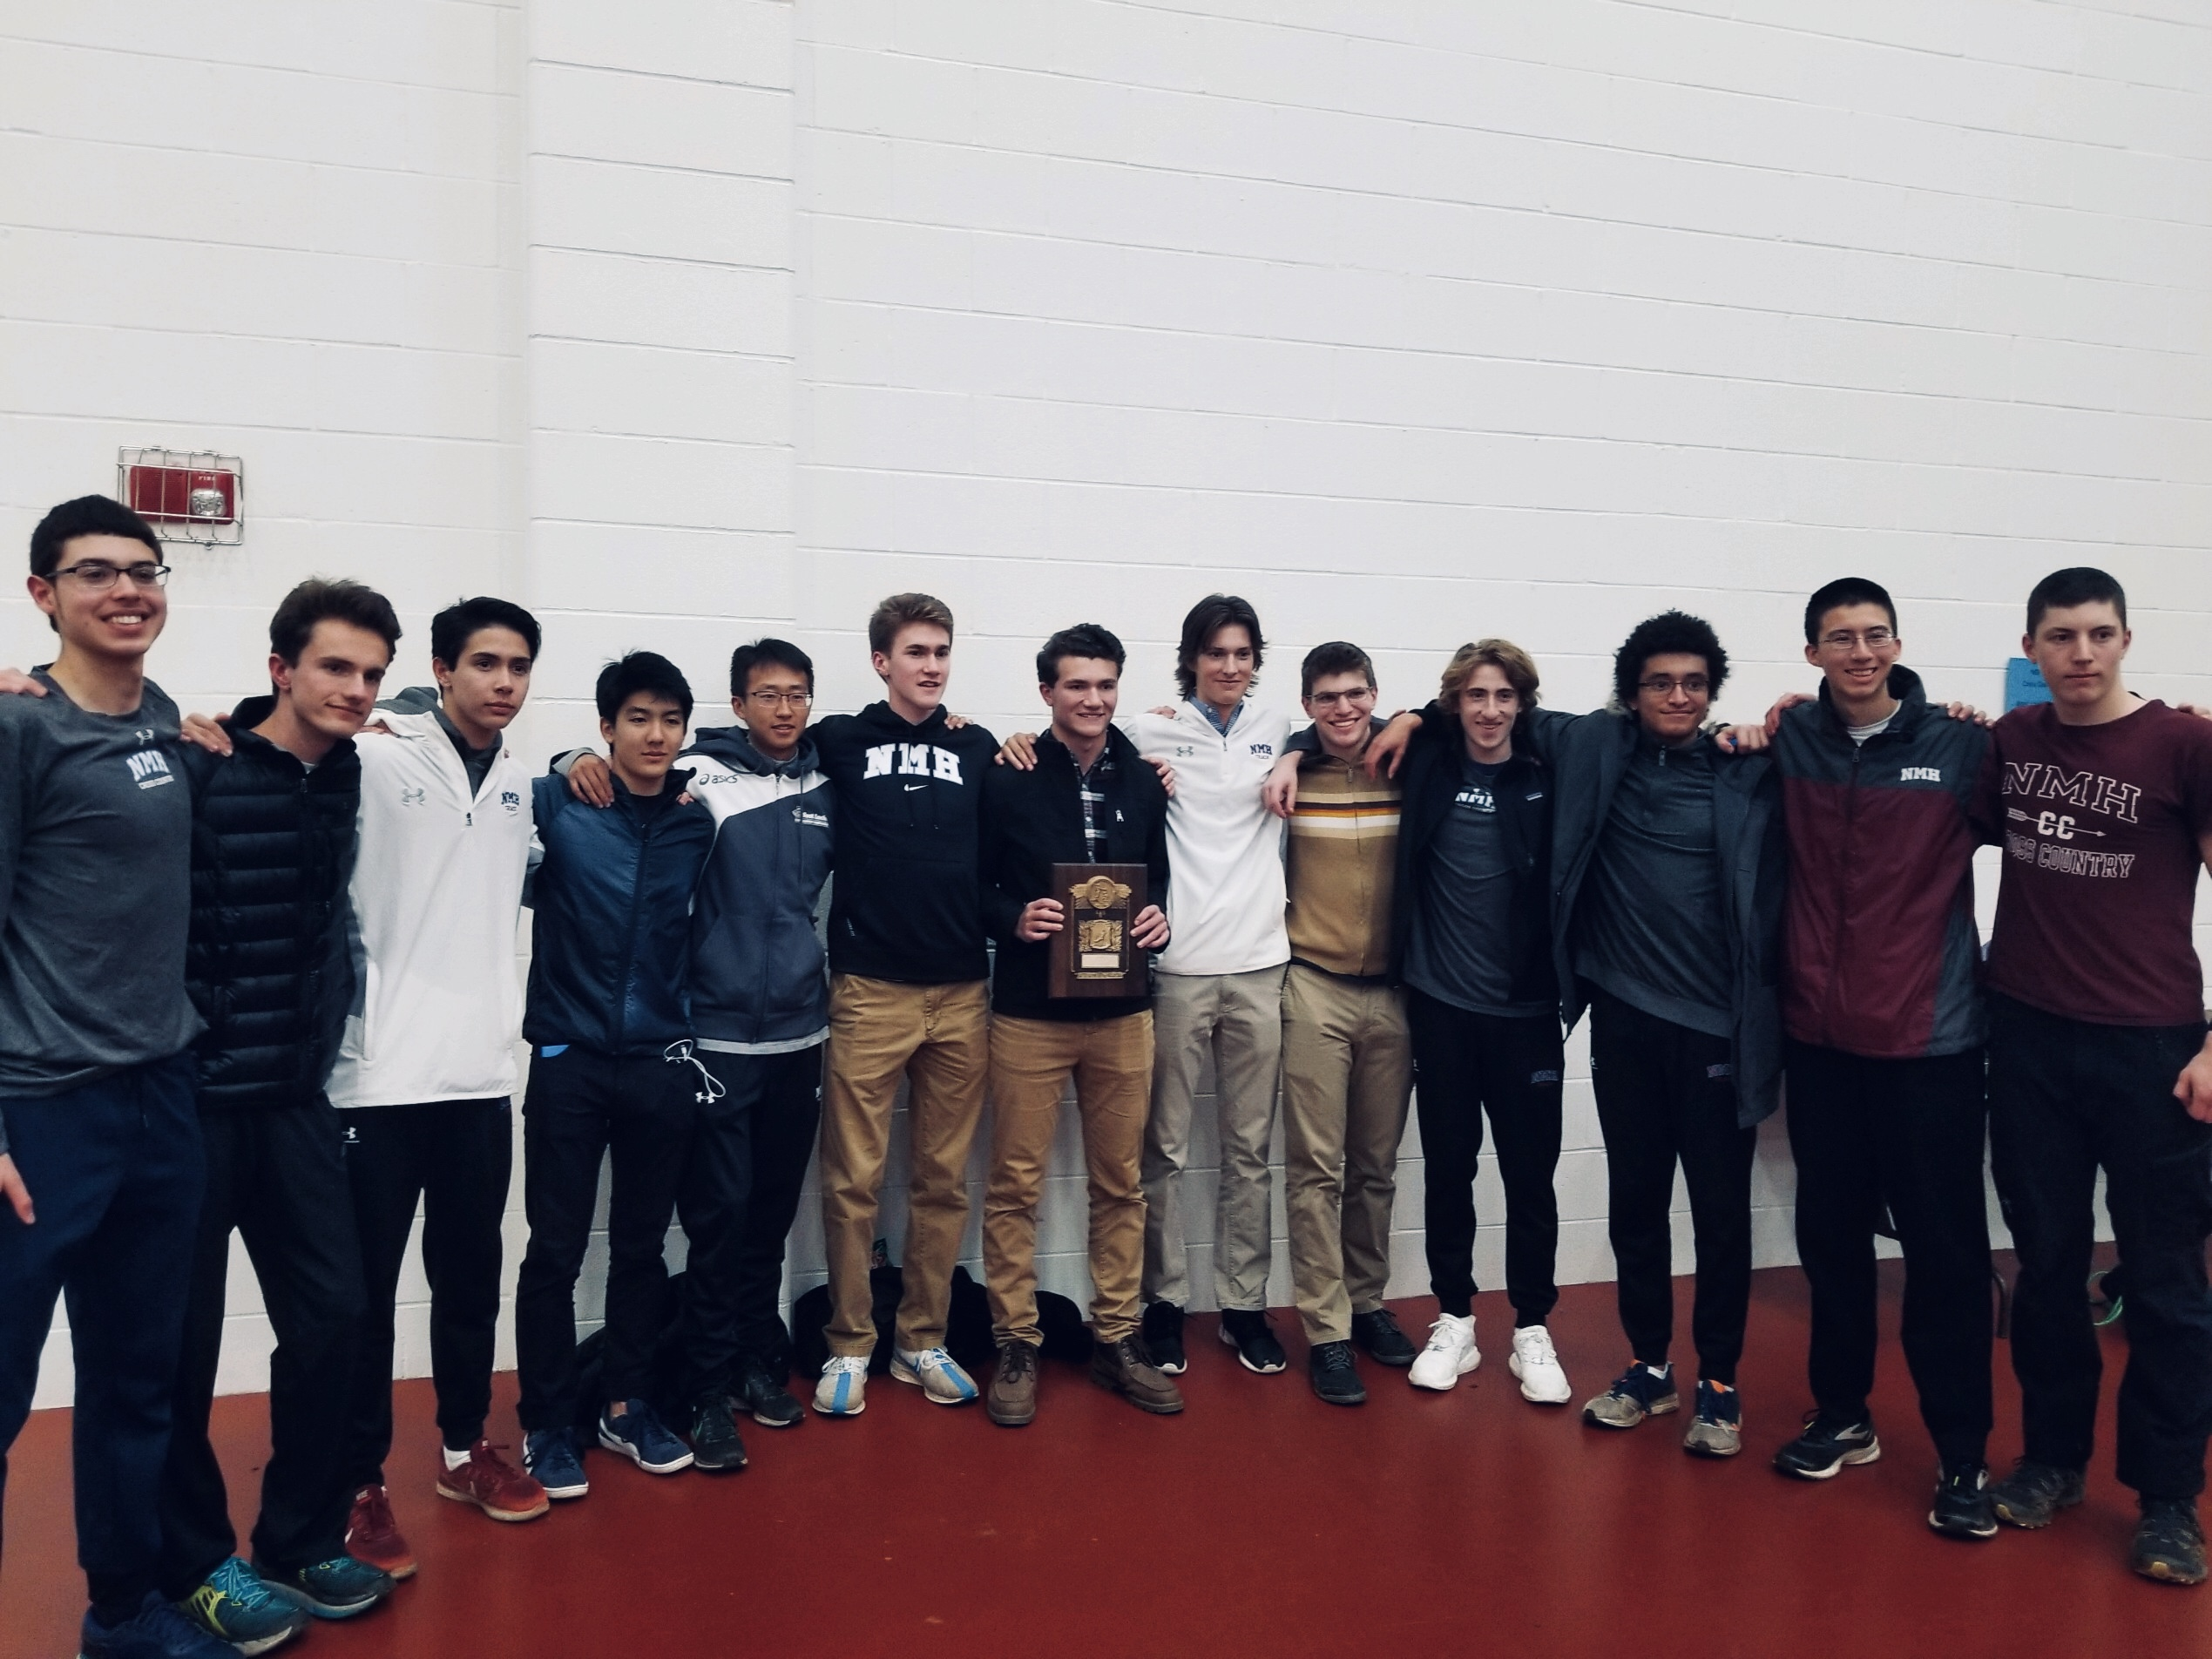 Athlete of the Week: New England Champion Boys' Varsity XC Team